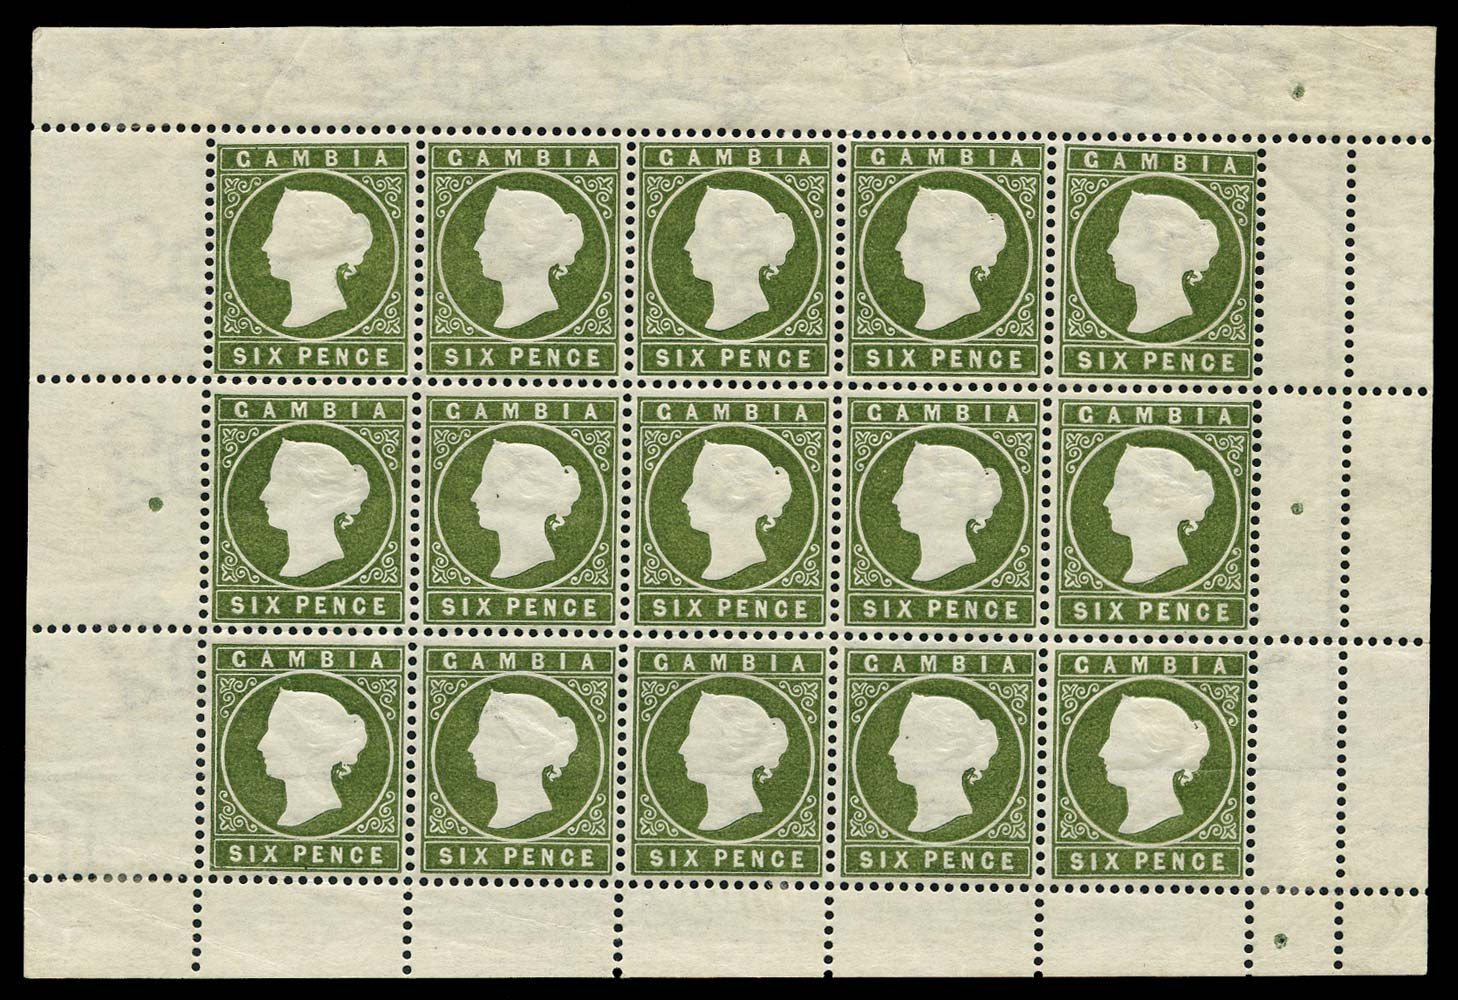 GAMBIA 1886  SG33/a Mint Complete sheet with Sloping Label variety